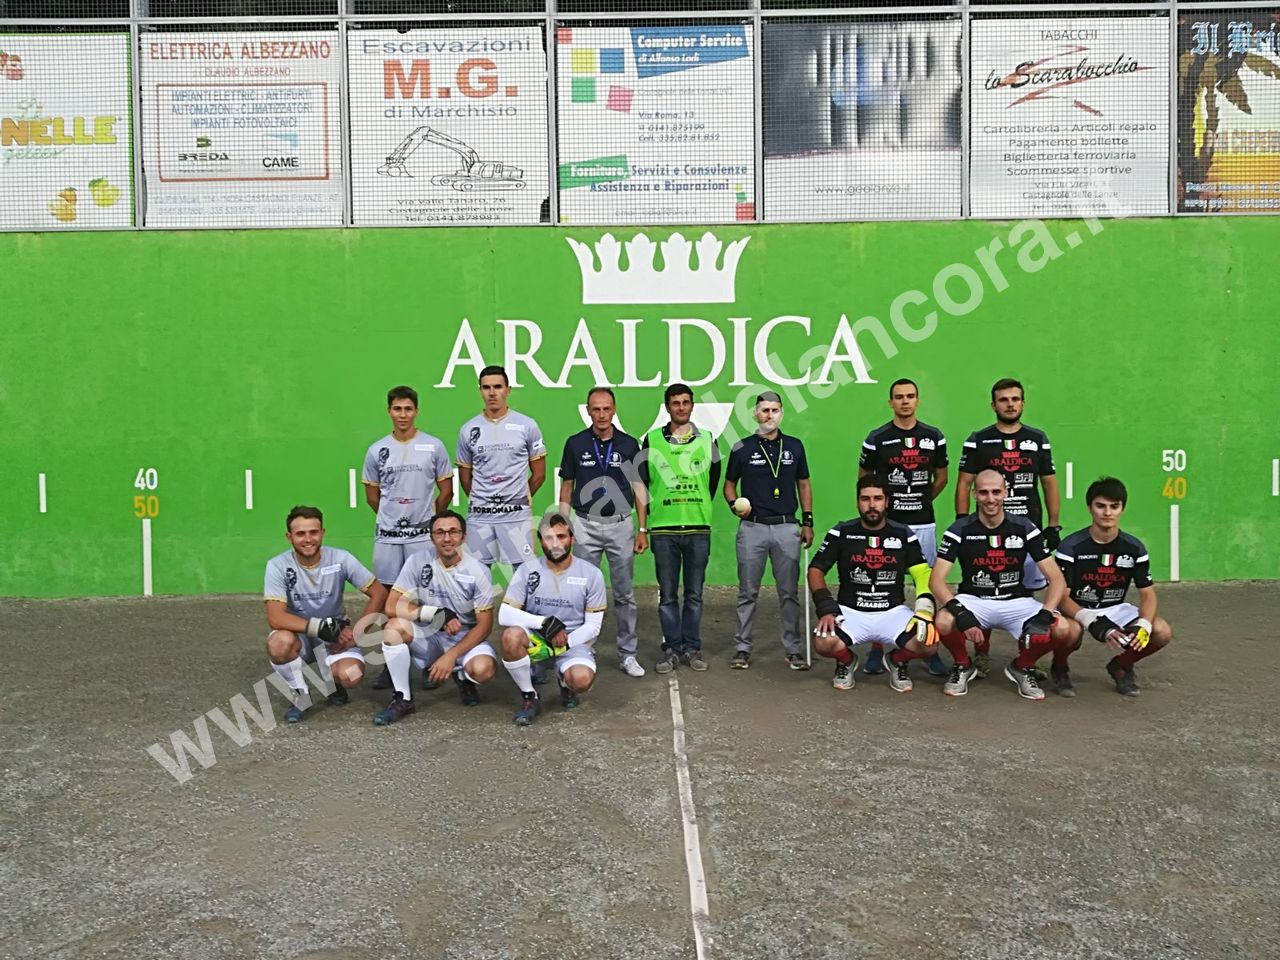 Photo of Pallapugno supercoppa: Campagno si impone a Castagnole